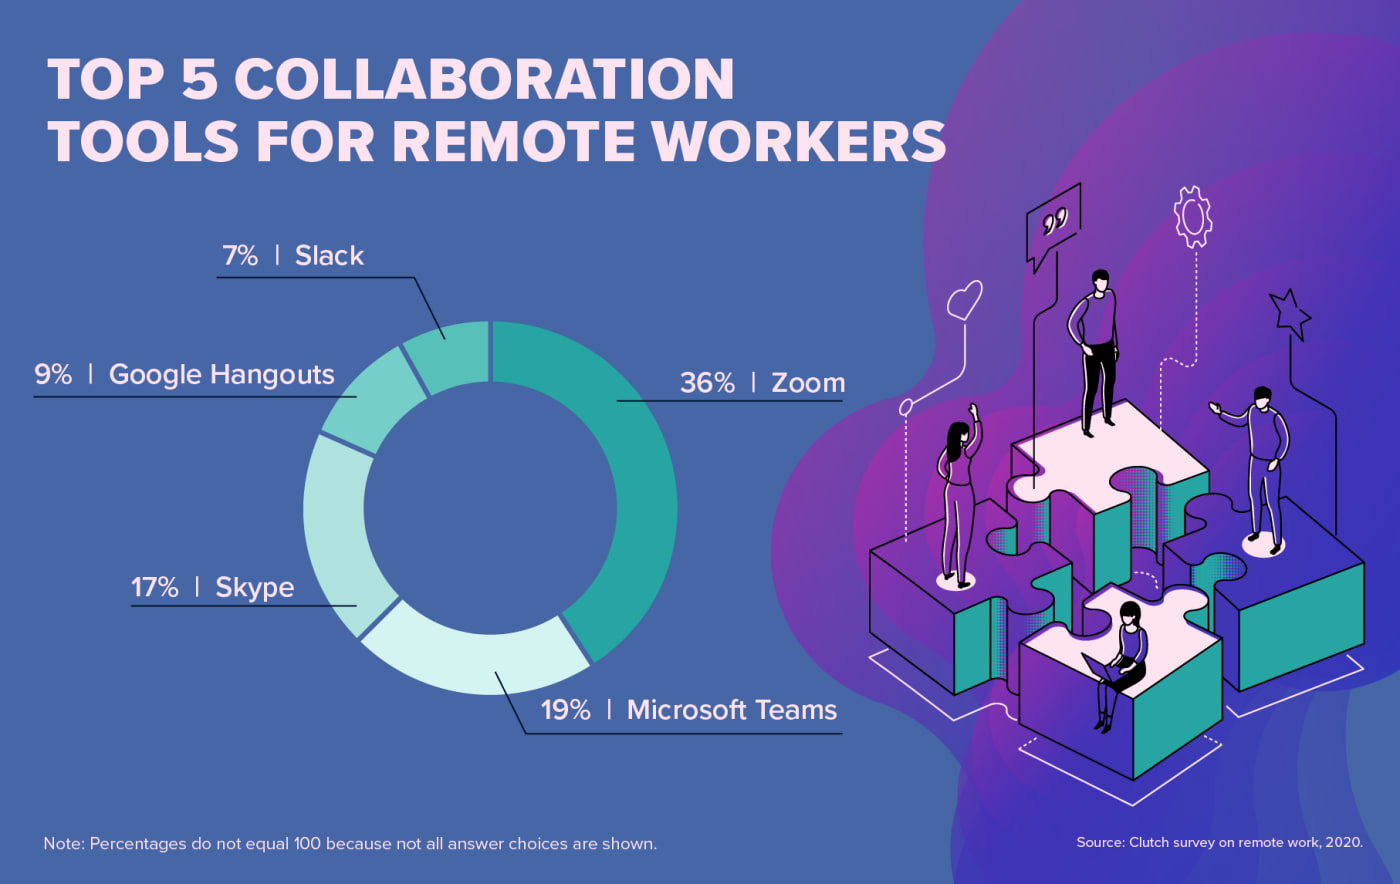 Top 5 Collaboration Tools for Remote Workers